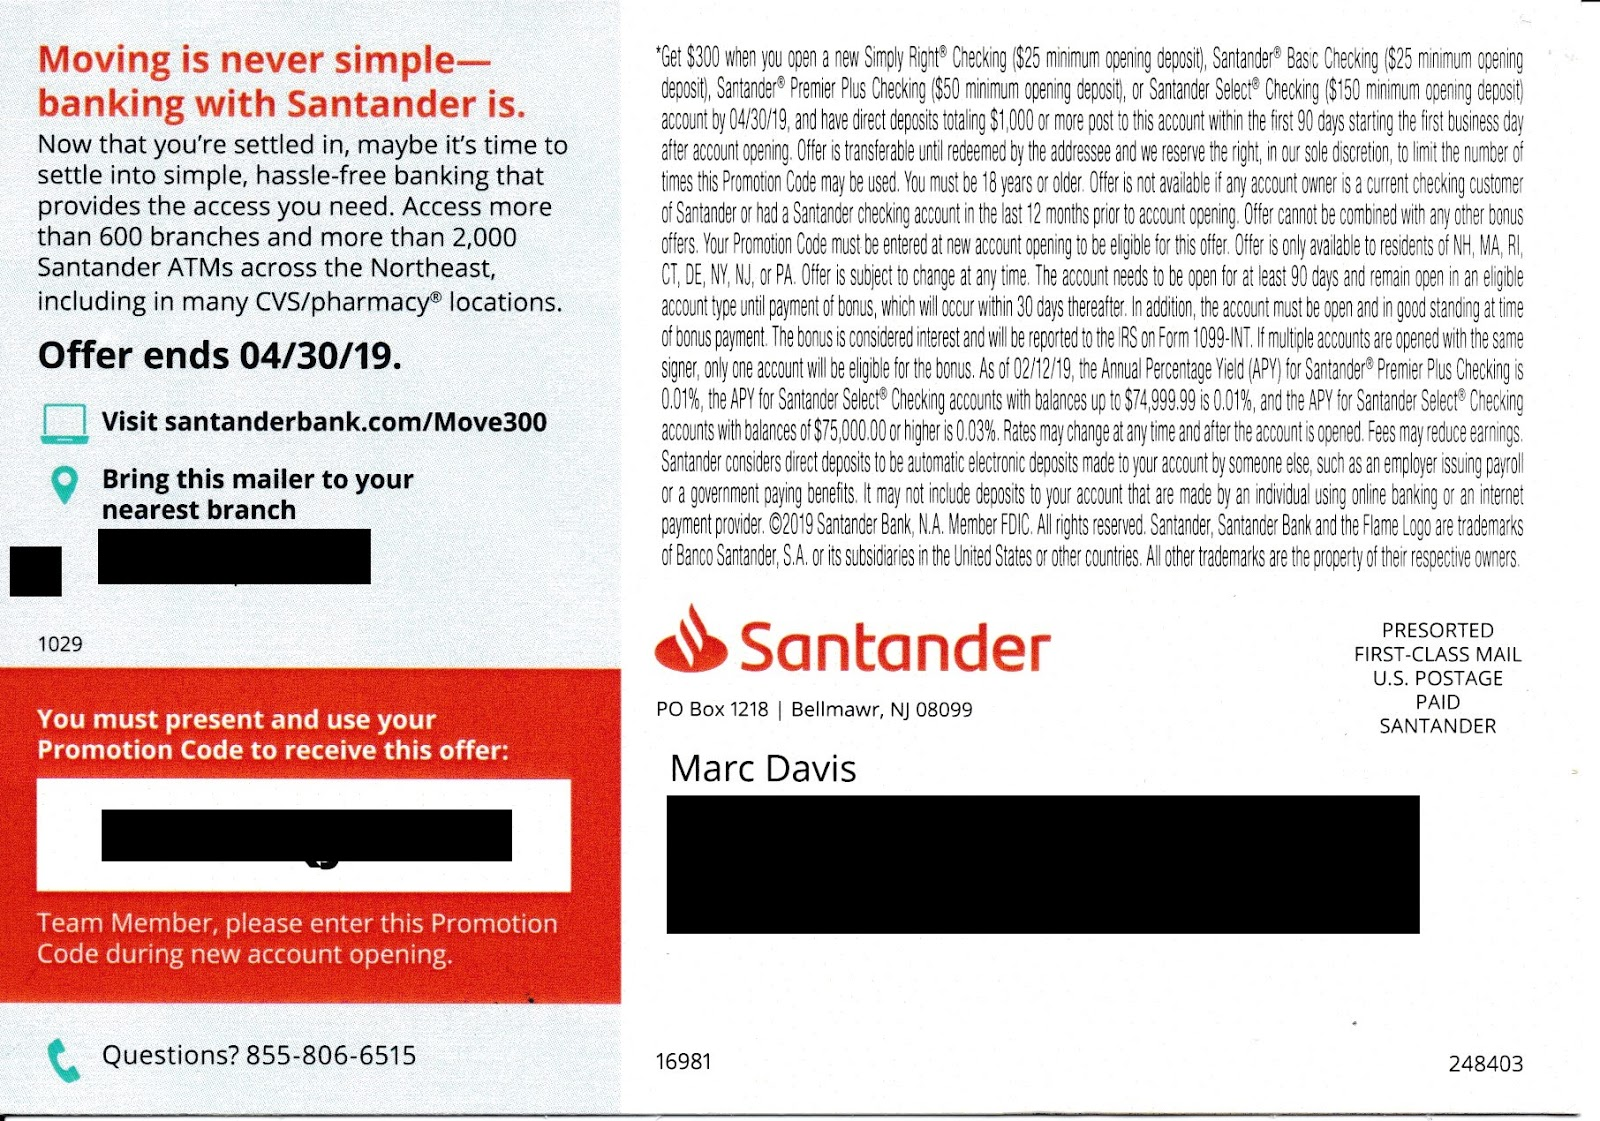 Mail That Fails: Santander Bank: What To Do to get $300?